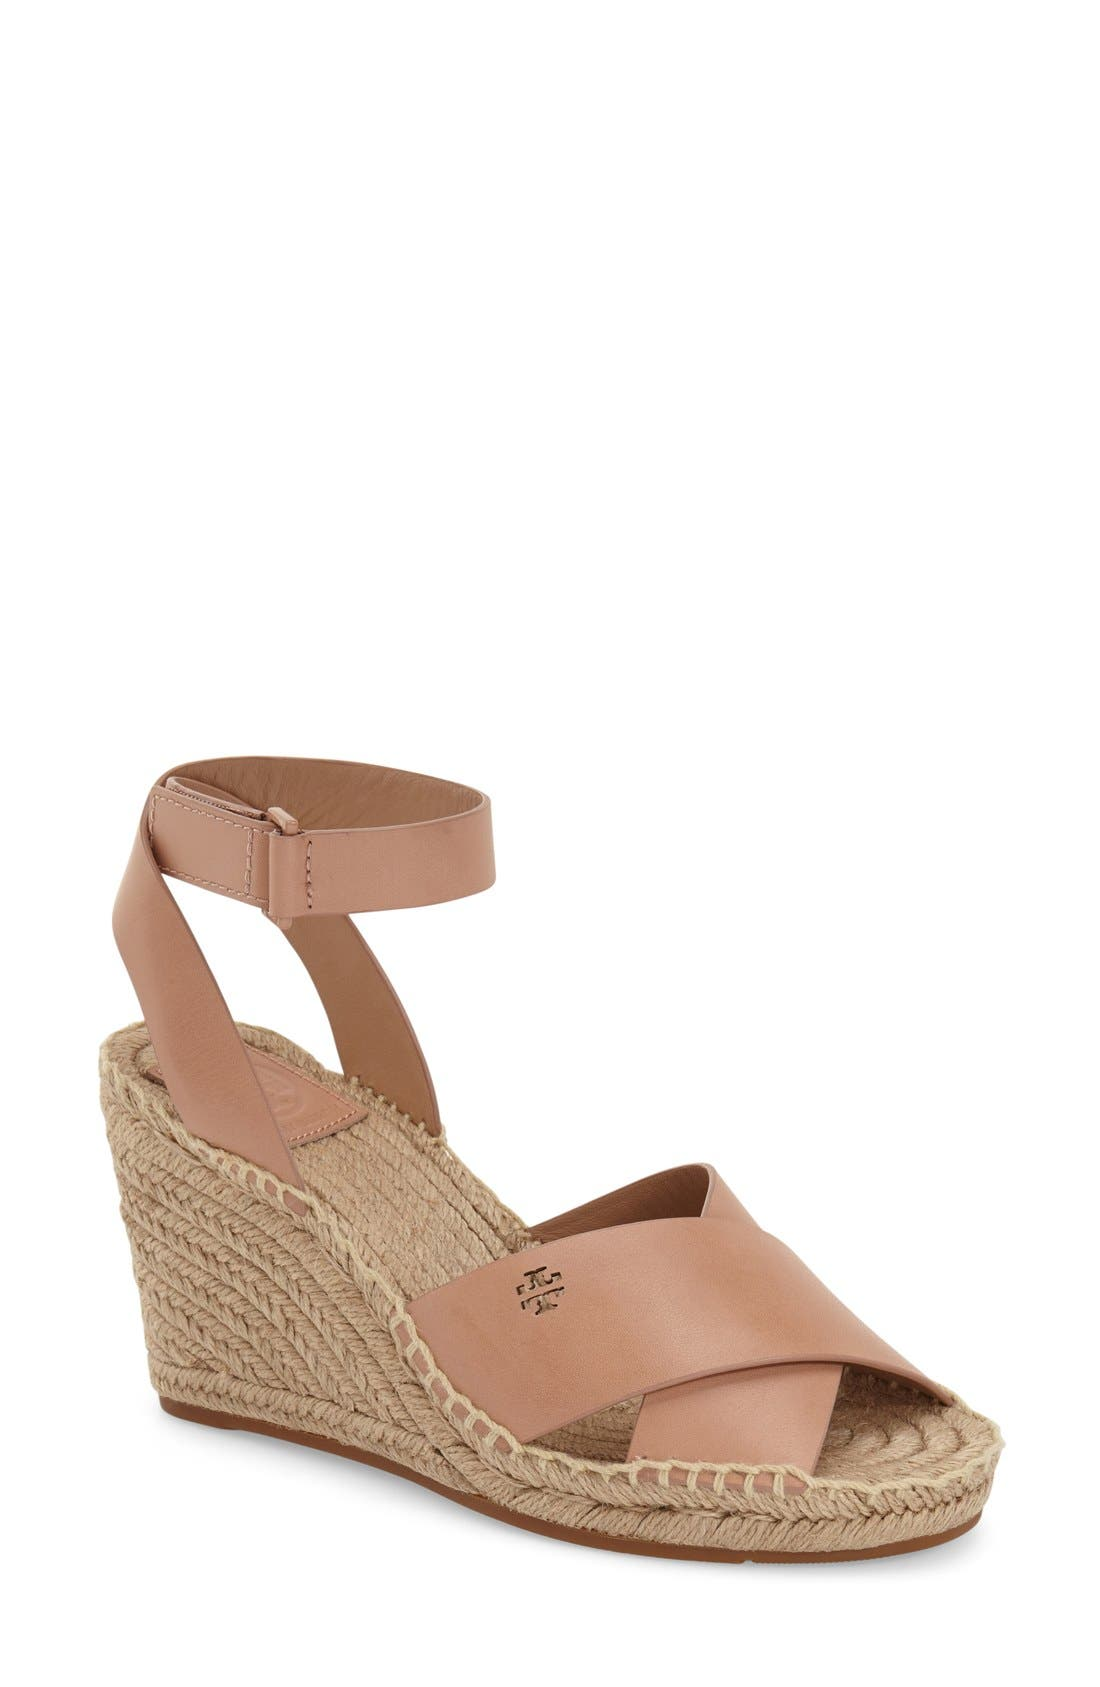 Alternate Image 1 Selected - Tory Burch 'Bima' Espadrille Wedge (Women)